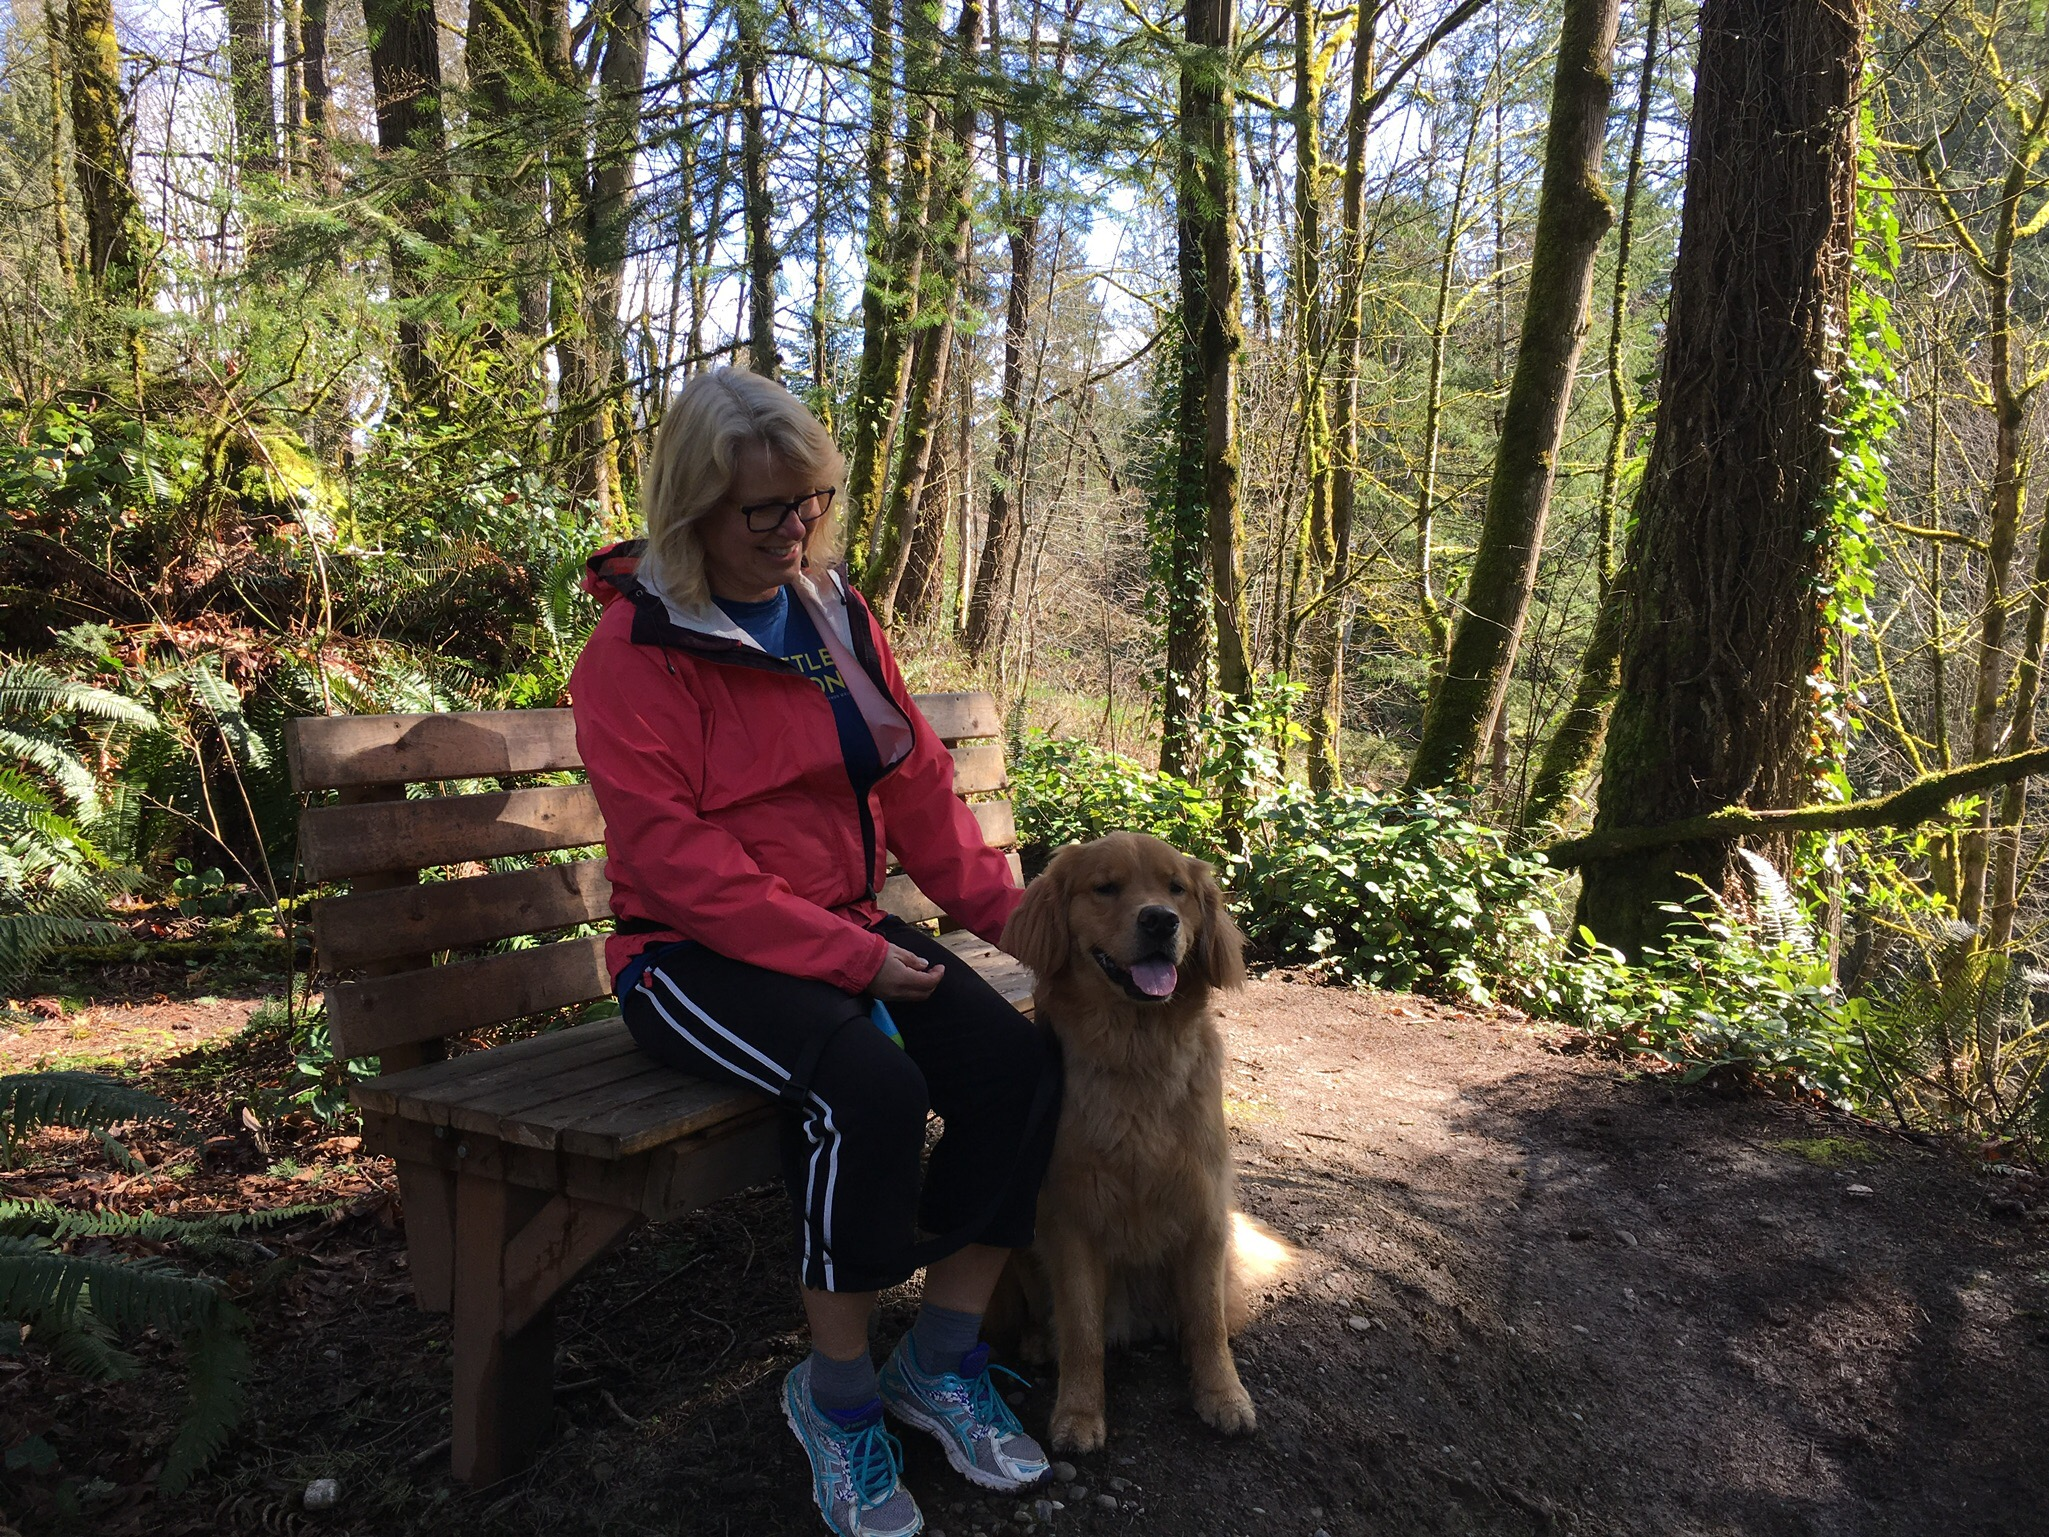 Wooden benches dot the trail, perfect for reflection--by humans and canines alike! Photo by Carrie Krueger.